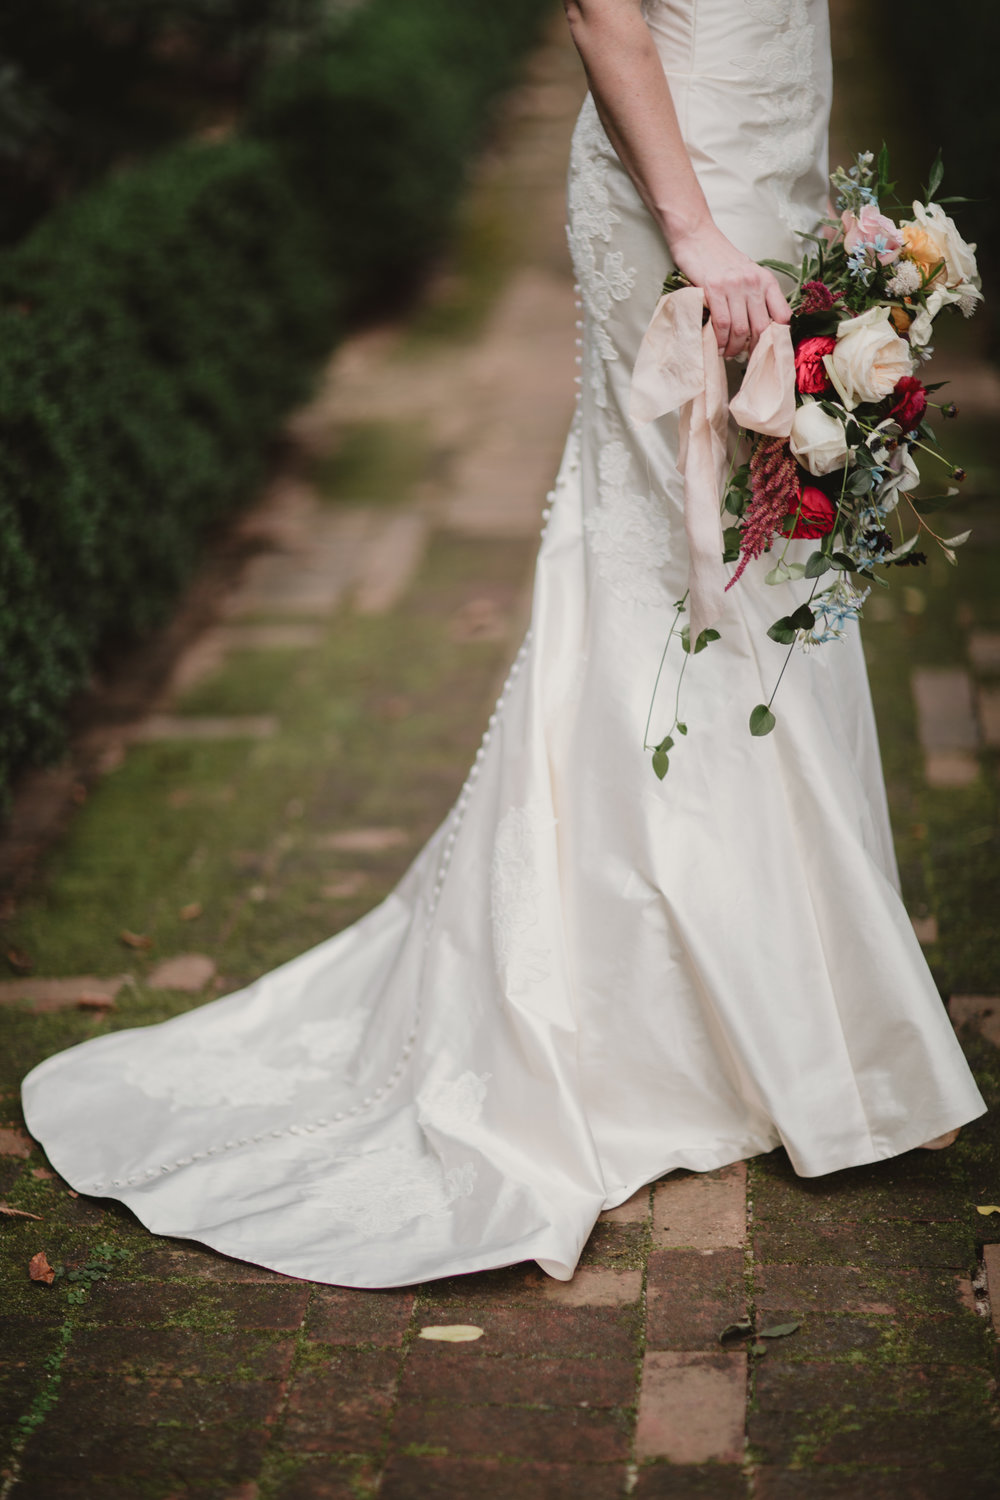 AliceBridals - Alicia White Photography-32.jpg